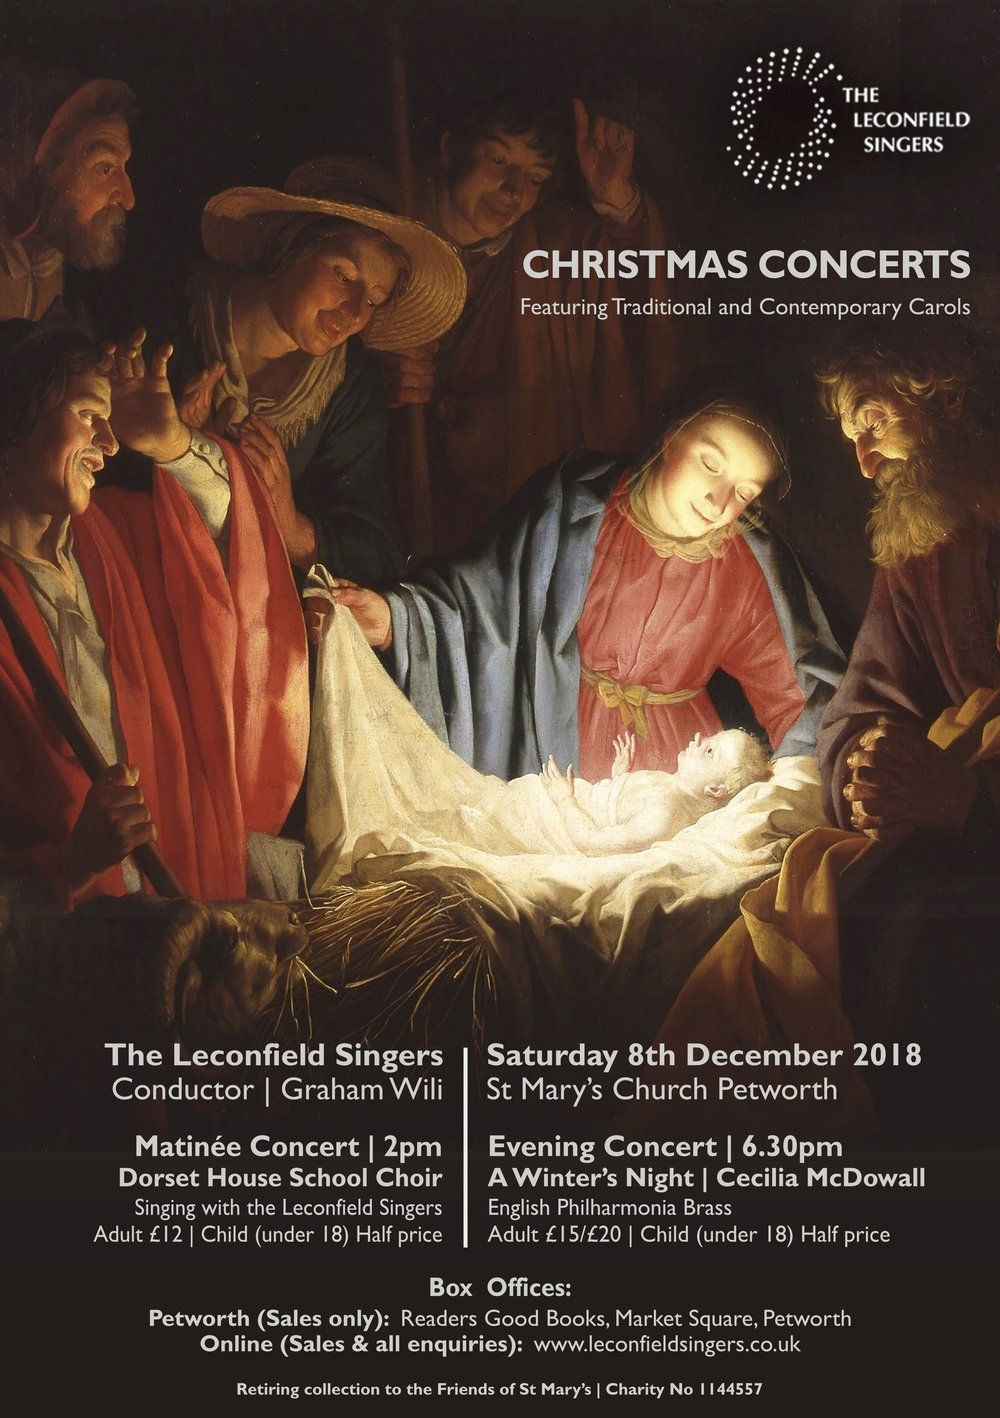 The Leconfield Singers Christmas Concert